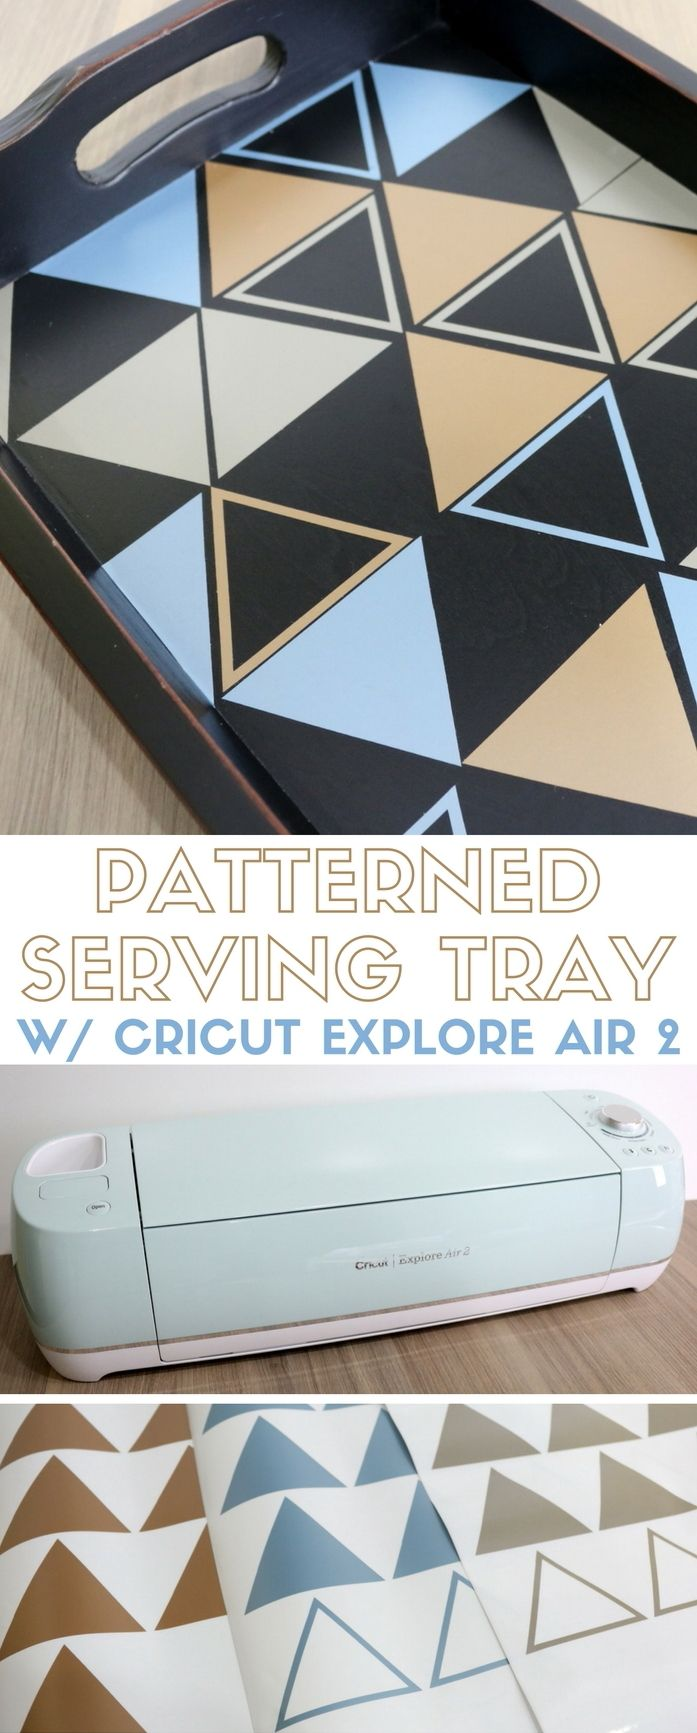 2197 best crafts and diy images on pinterest diy crafts and home